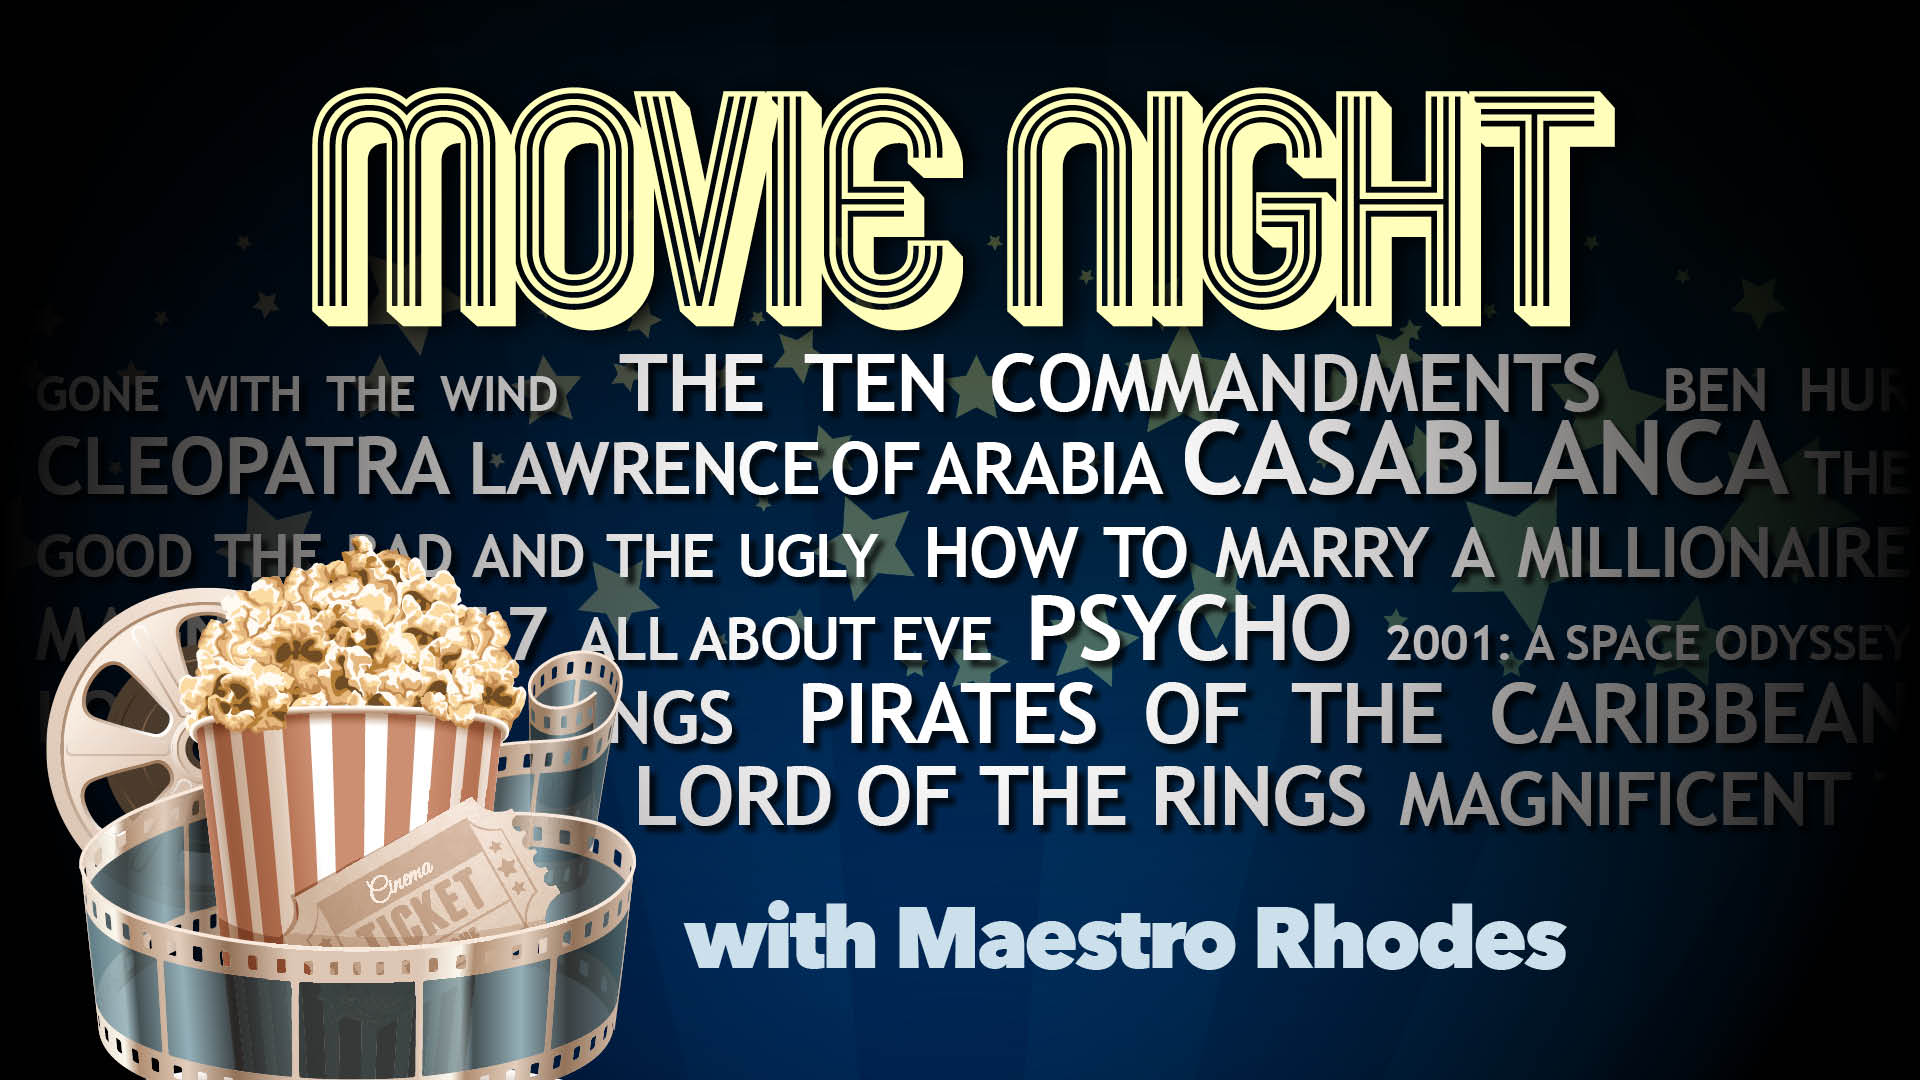 Springfield Symphony Orchestra Movie Night With Maestro Rhodes